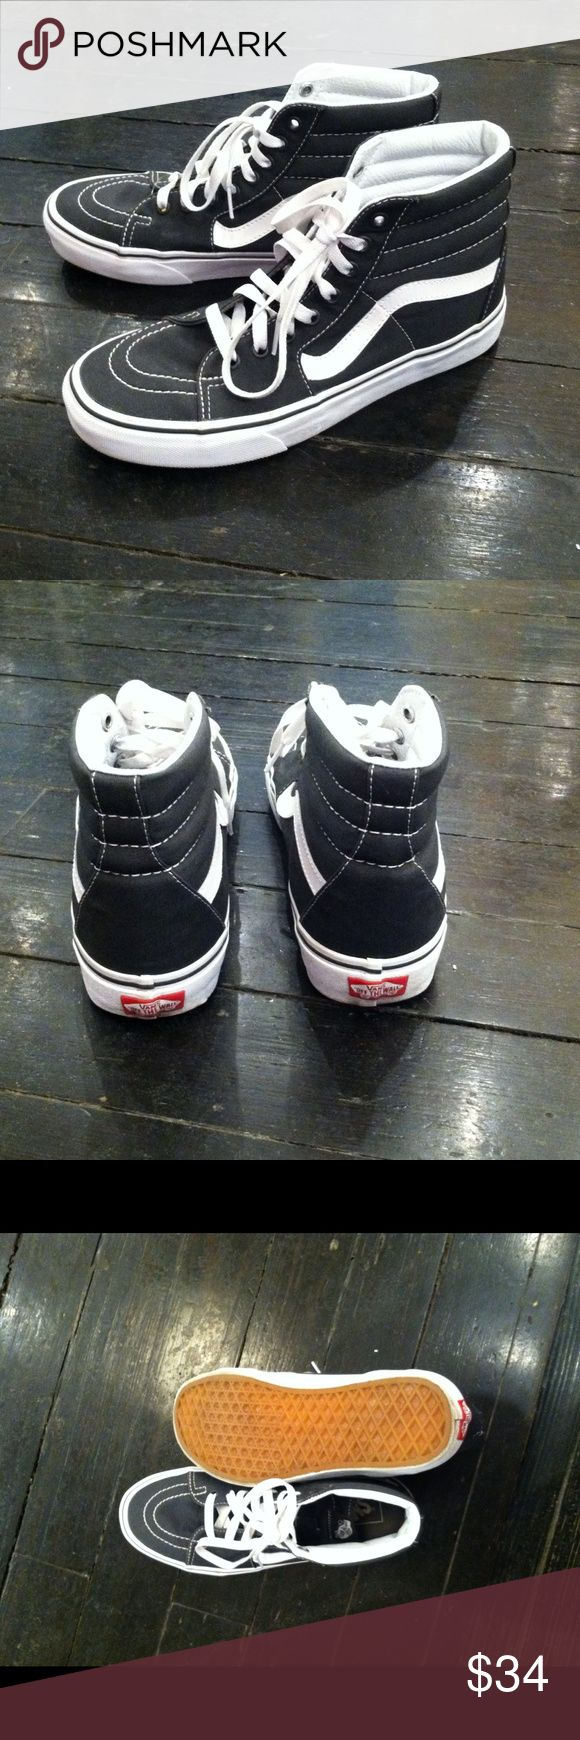 Vans Hi Top Sneakers Worn only once. In perfect condition! The were a gift and were the wrong size. Very comfortable though. Vans Shoes Sneakers